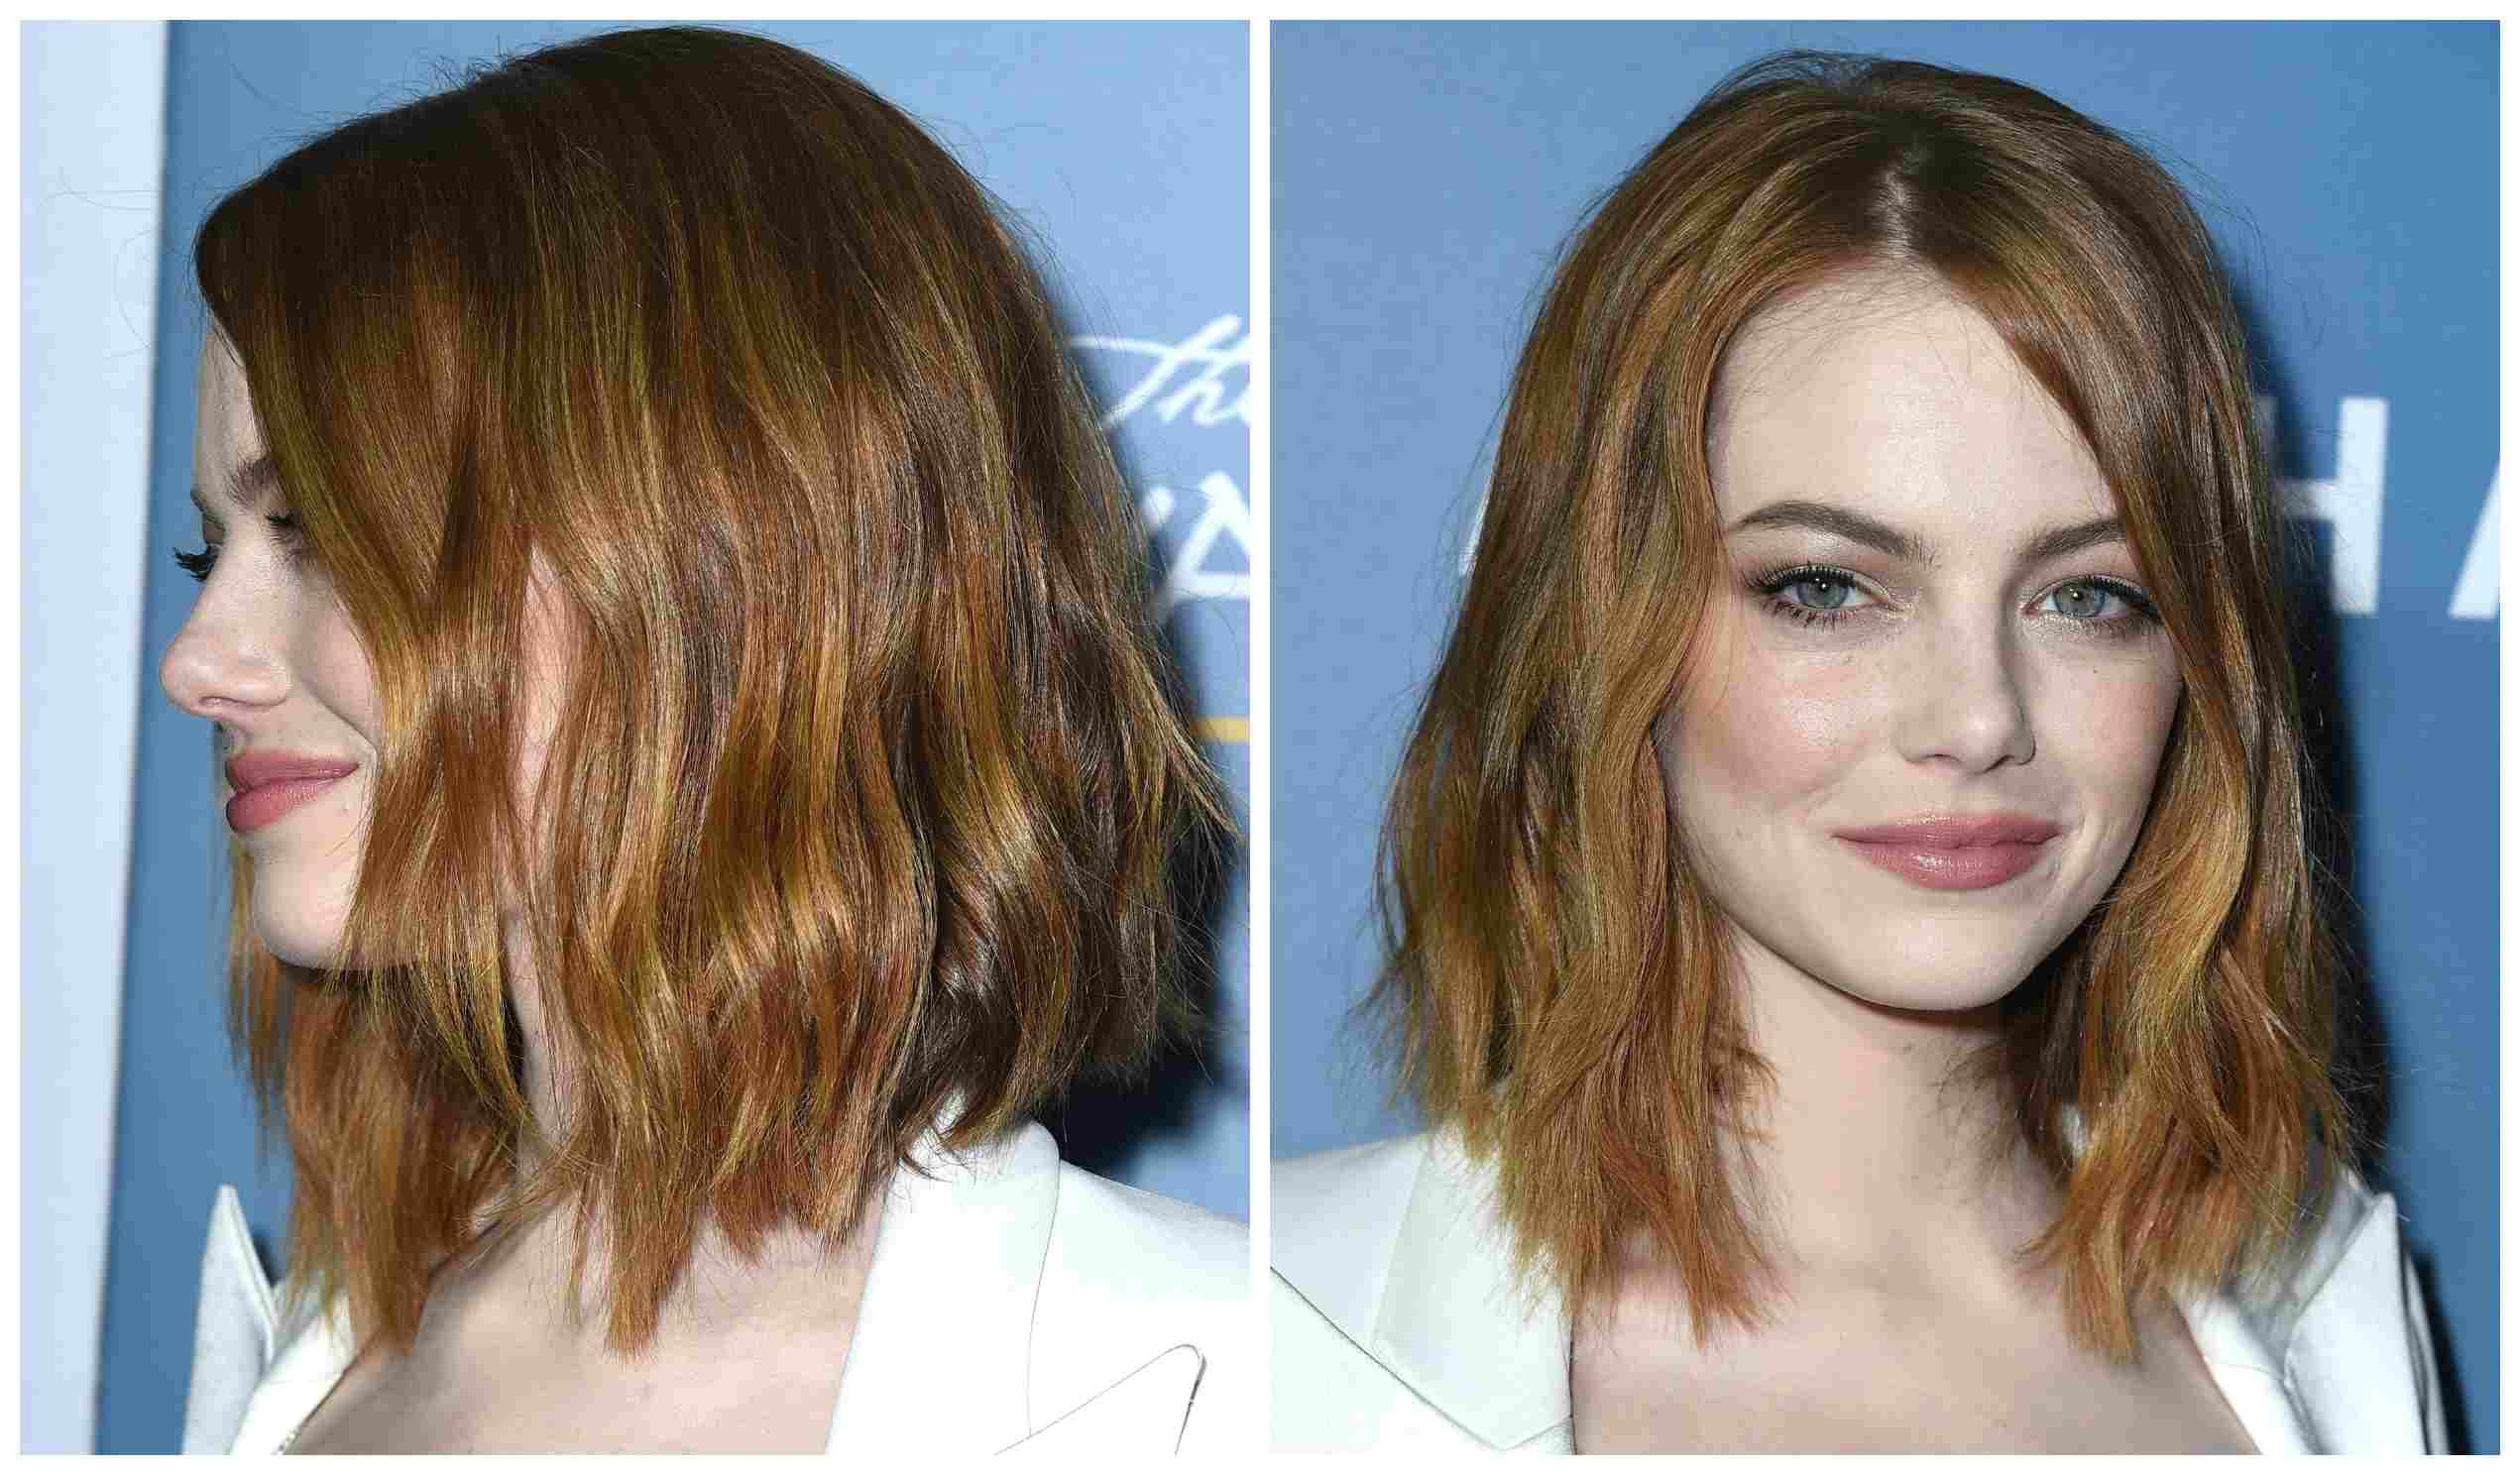 Hairstyles Parted Down the Middle How to Nail the Medium Length Hair Trend